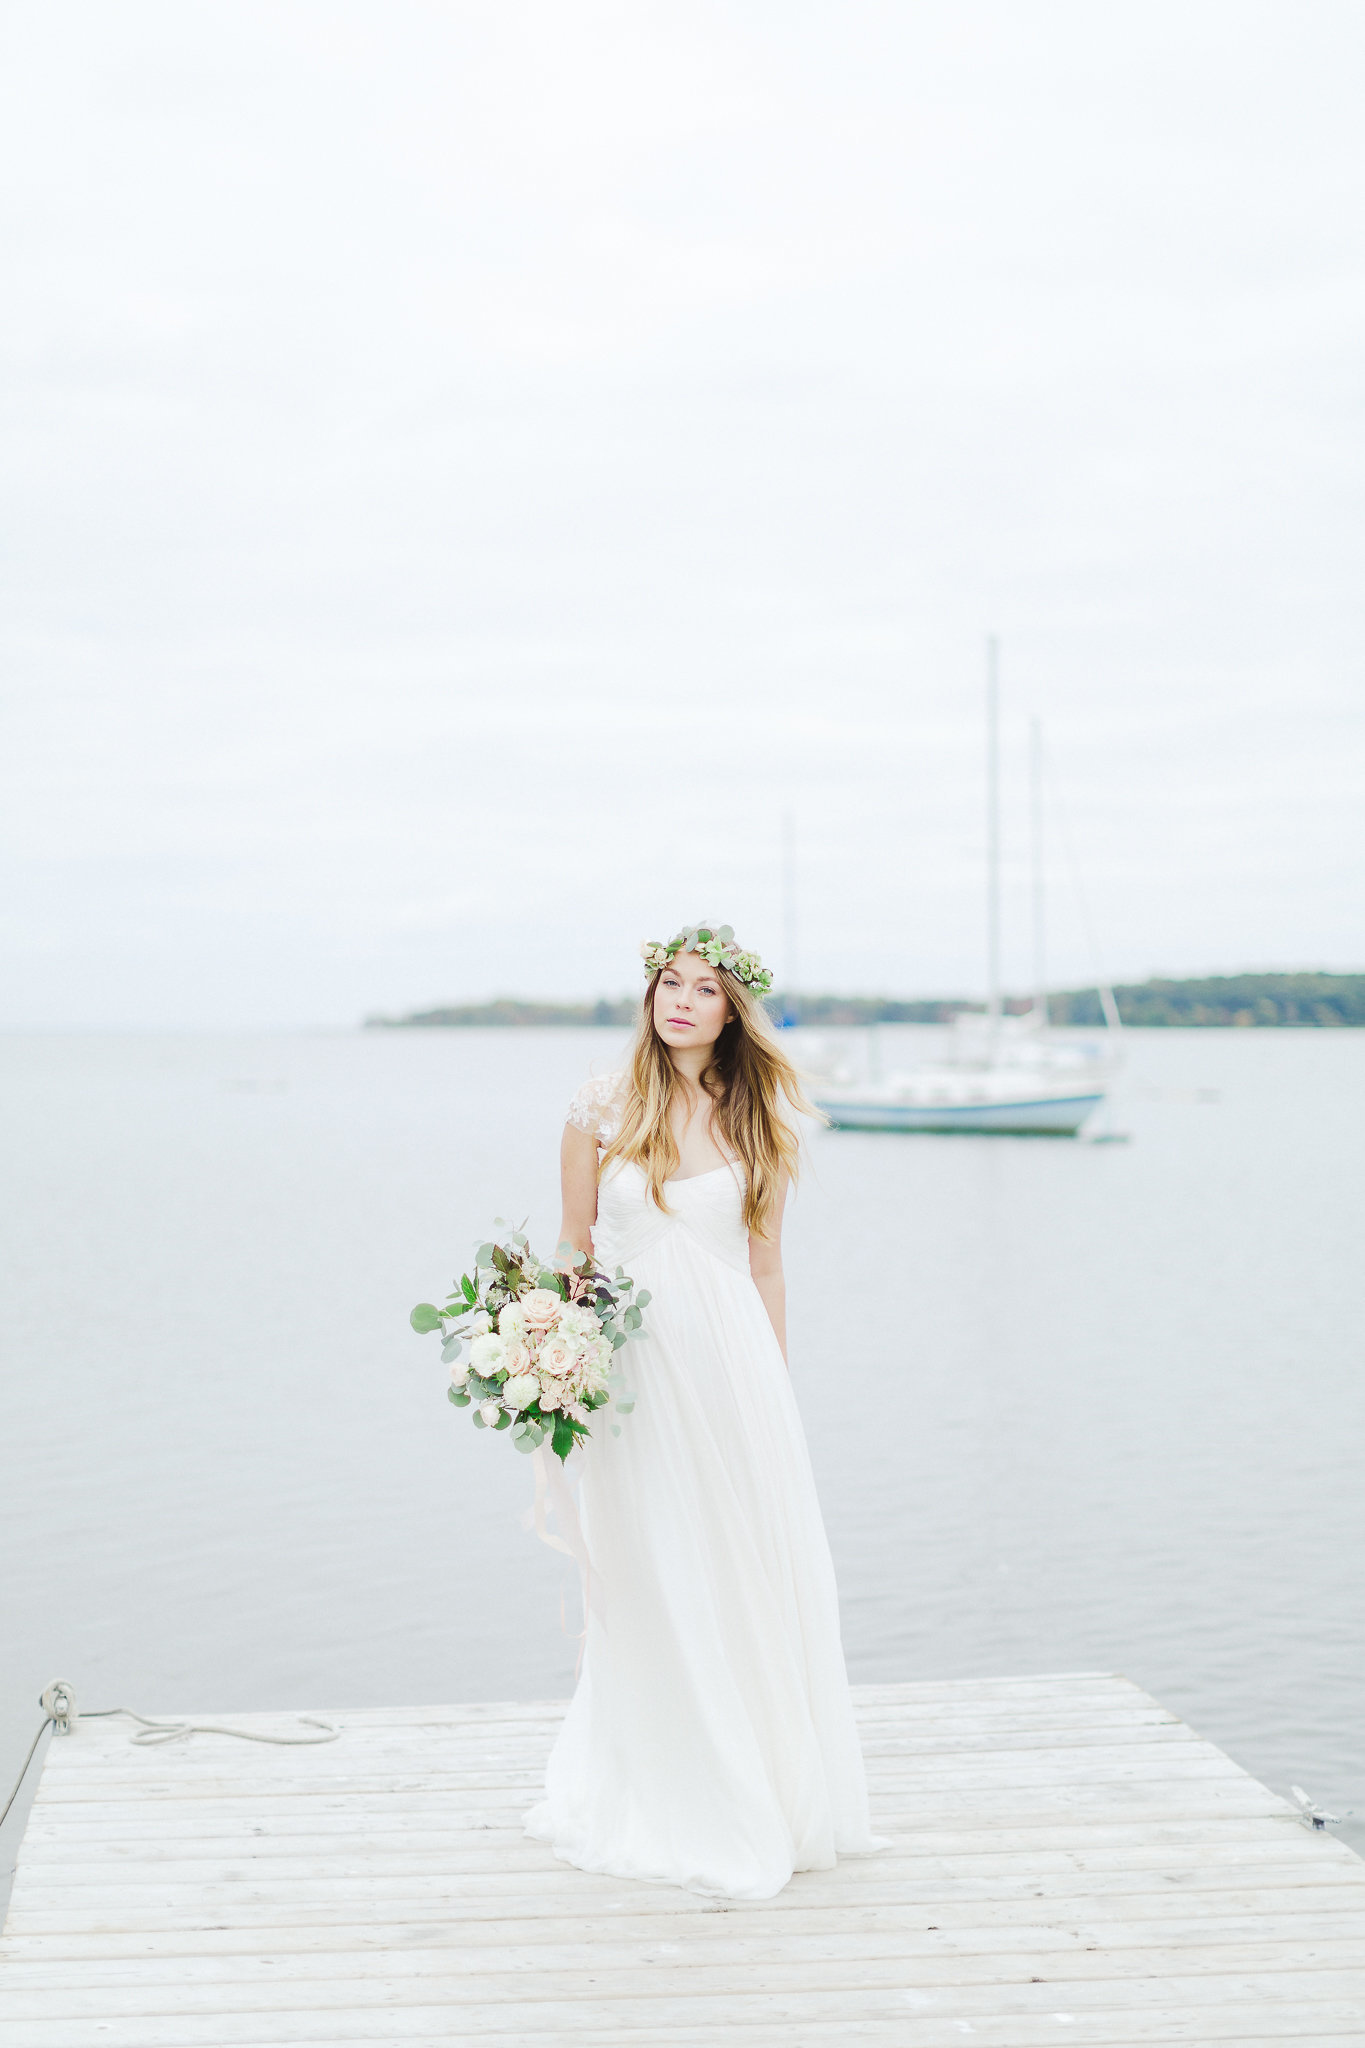 photographe-mariage-montreal-west-island-lisa-renault-photographie-montreal-wedding-photographer-31